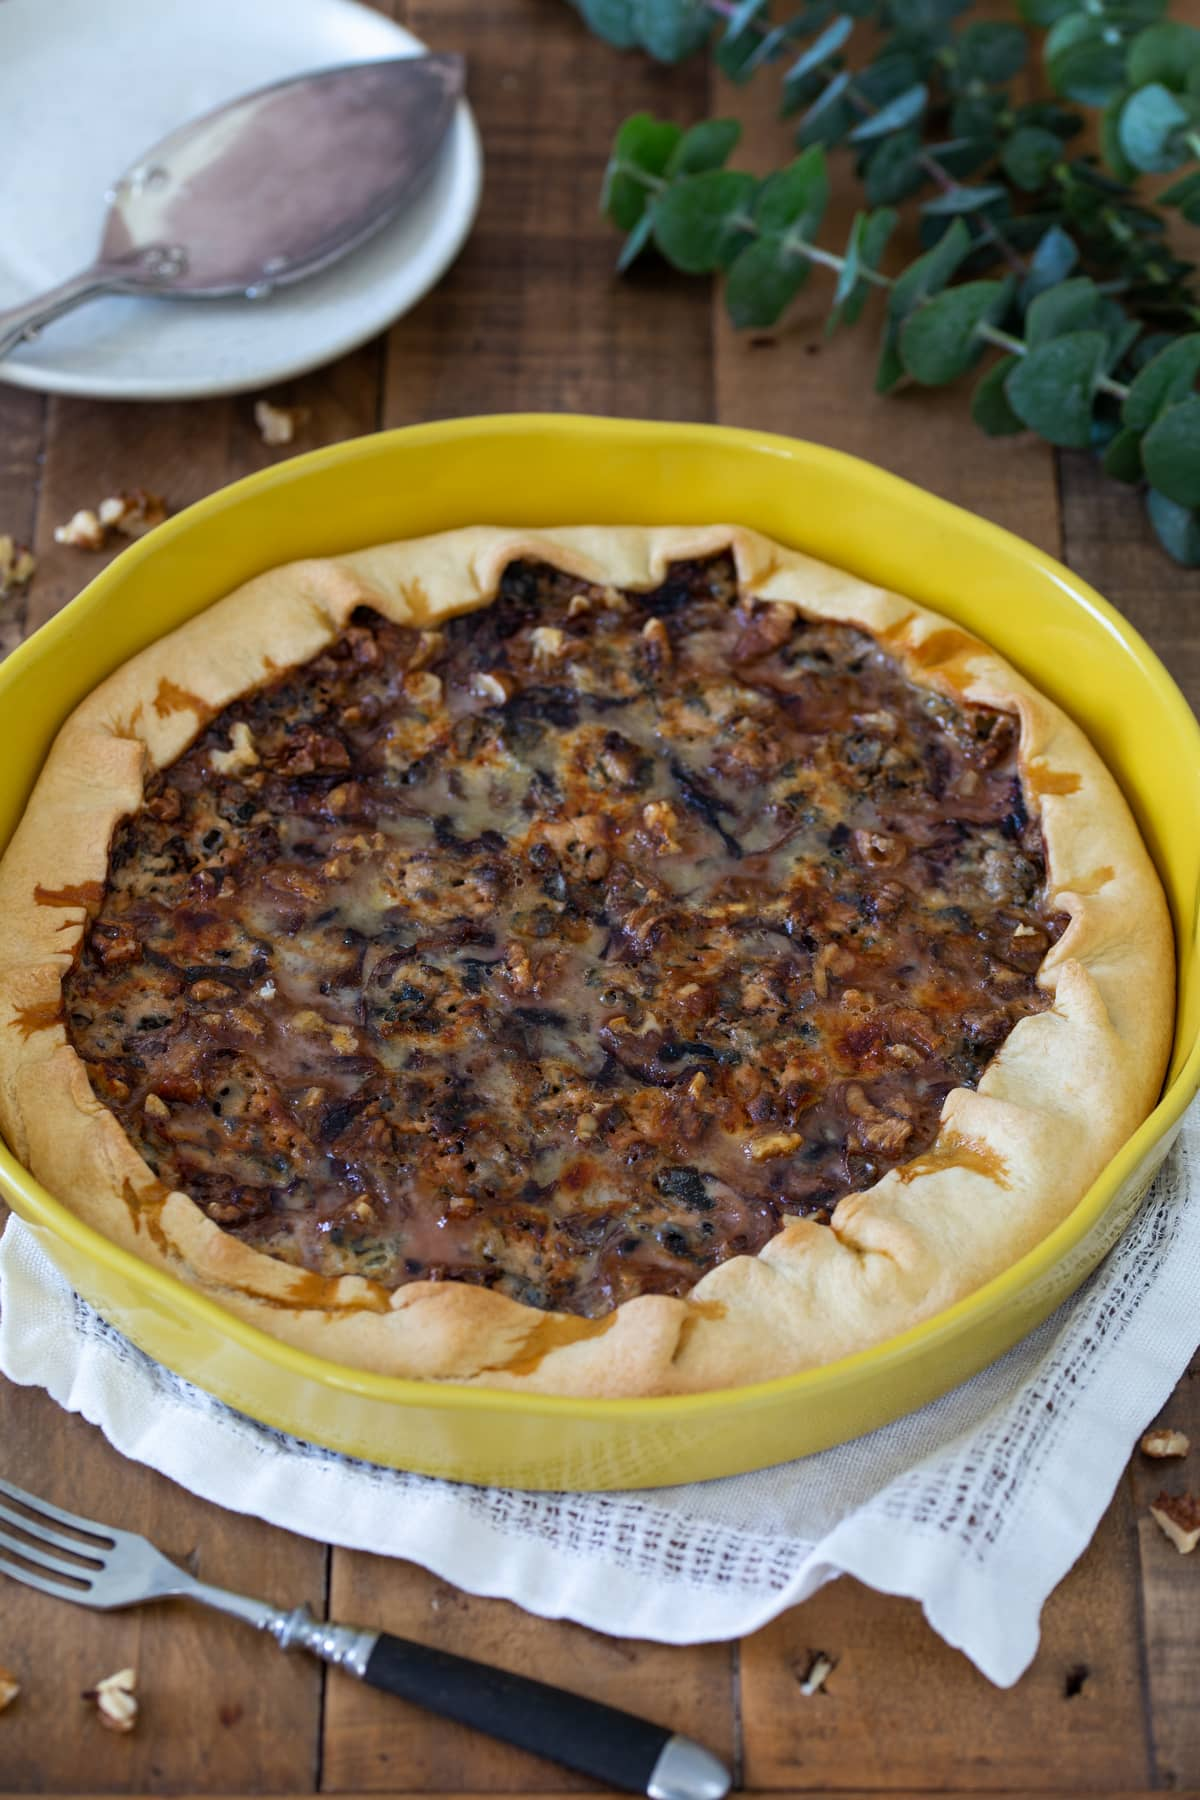 Radicchio and blue cheese quiche in a yellow ceramic pan.